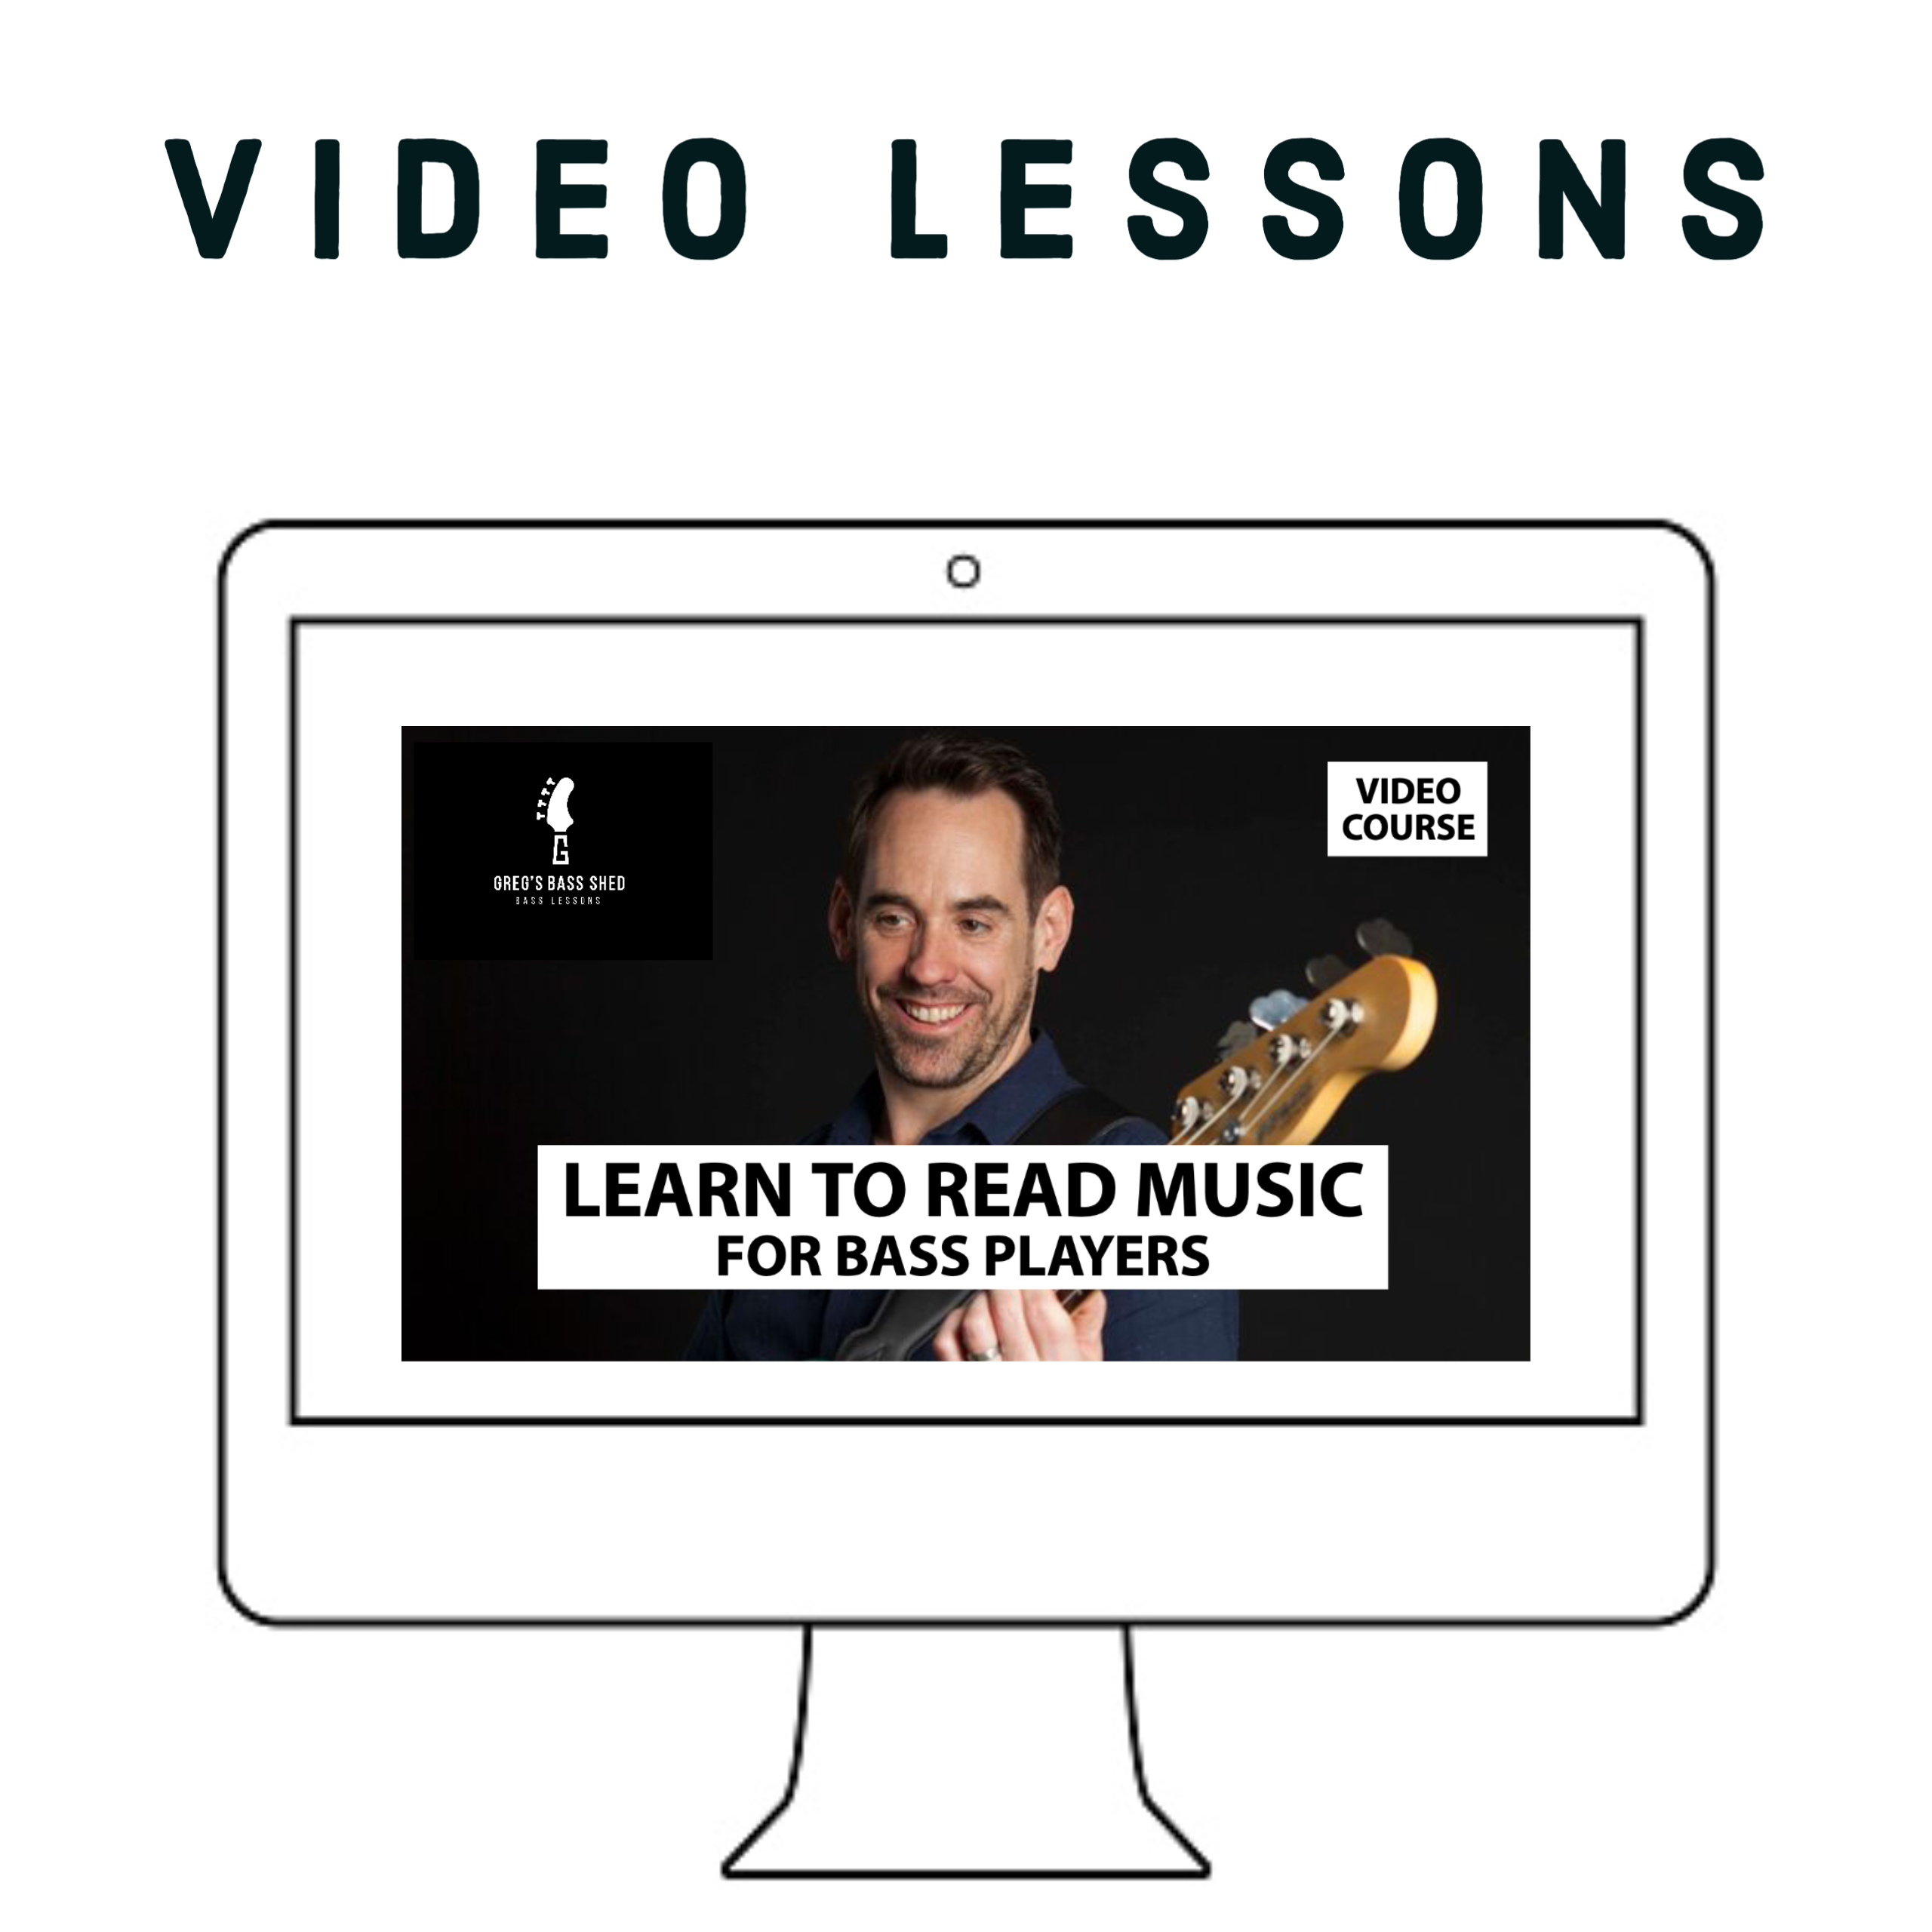 computer screen showing Reading Music Course for bass players